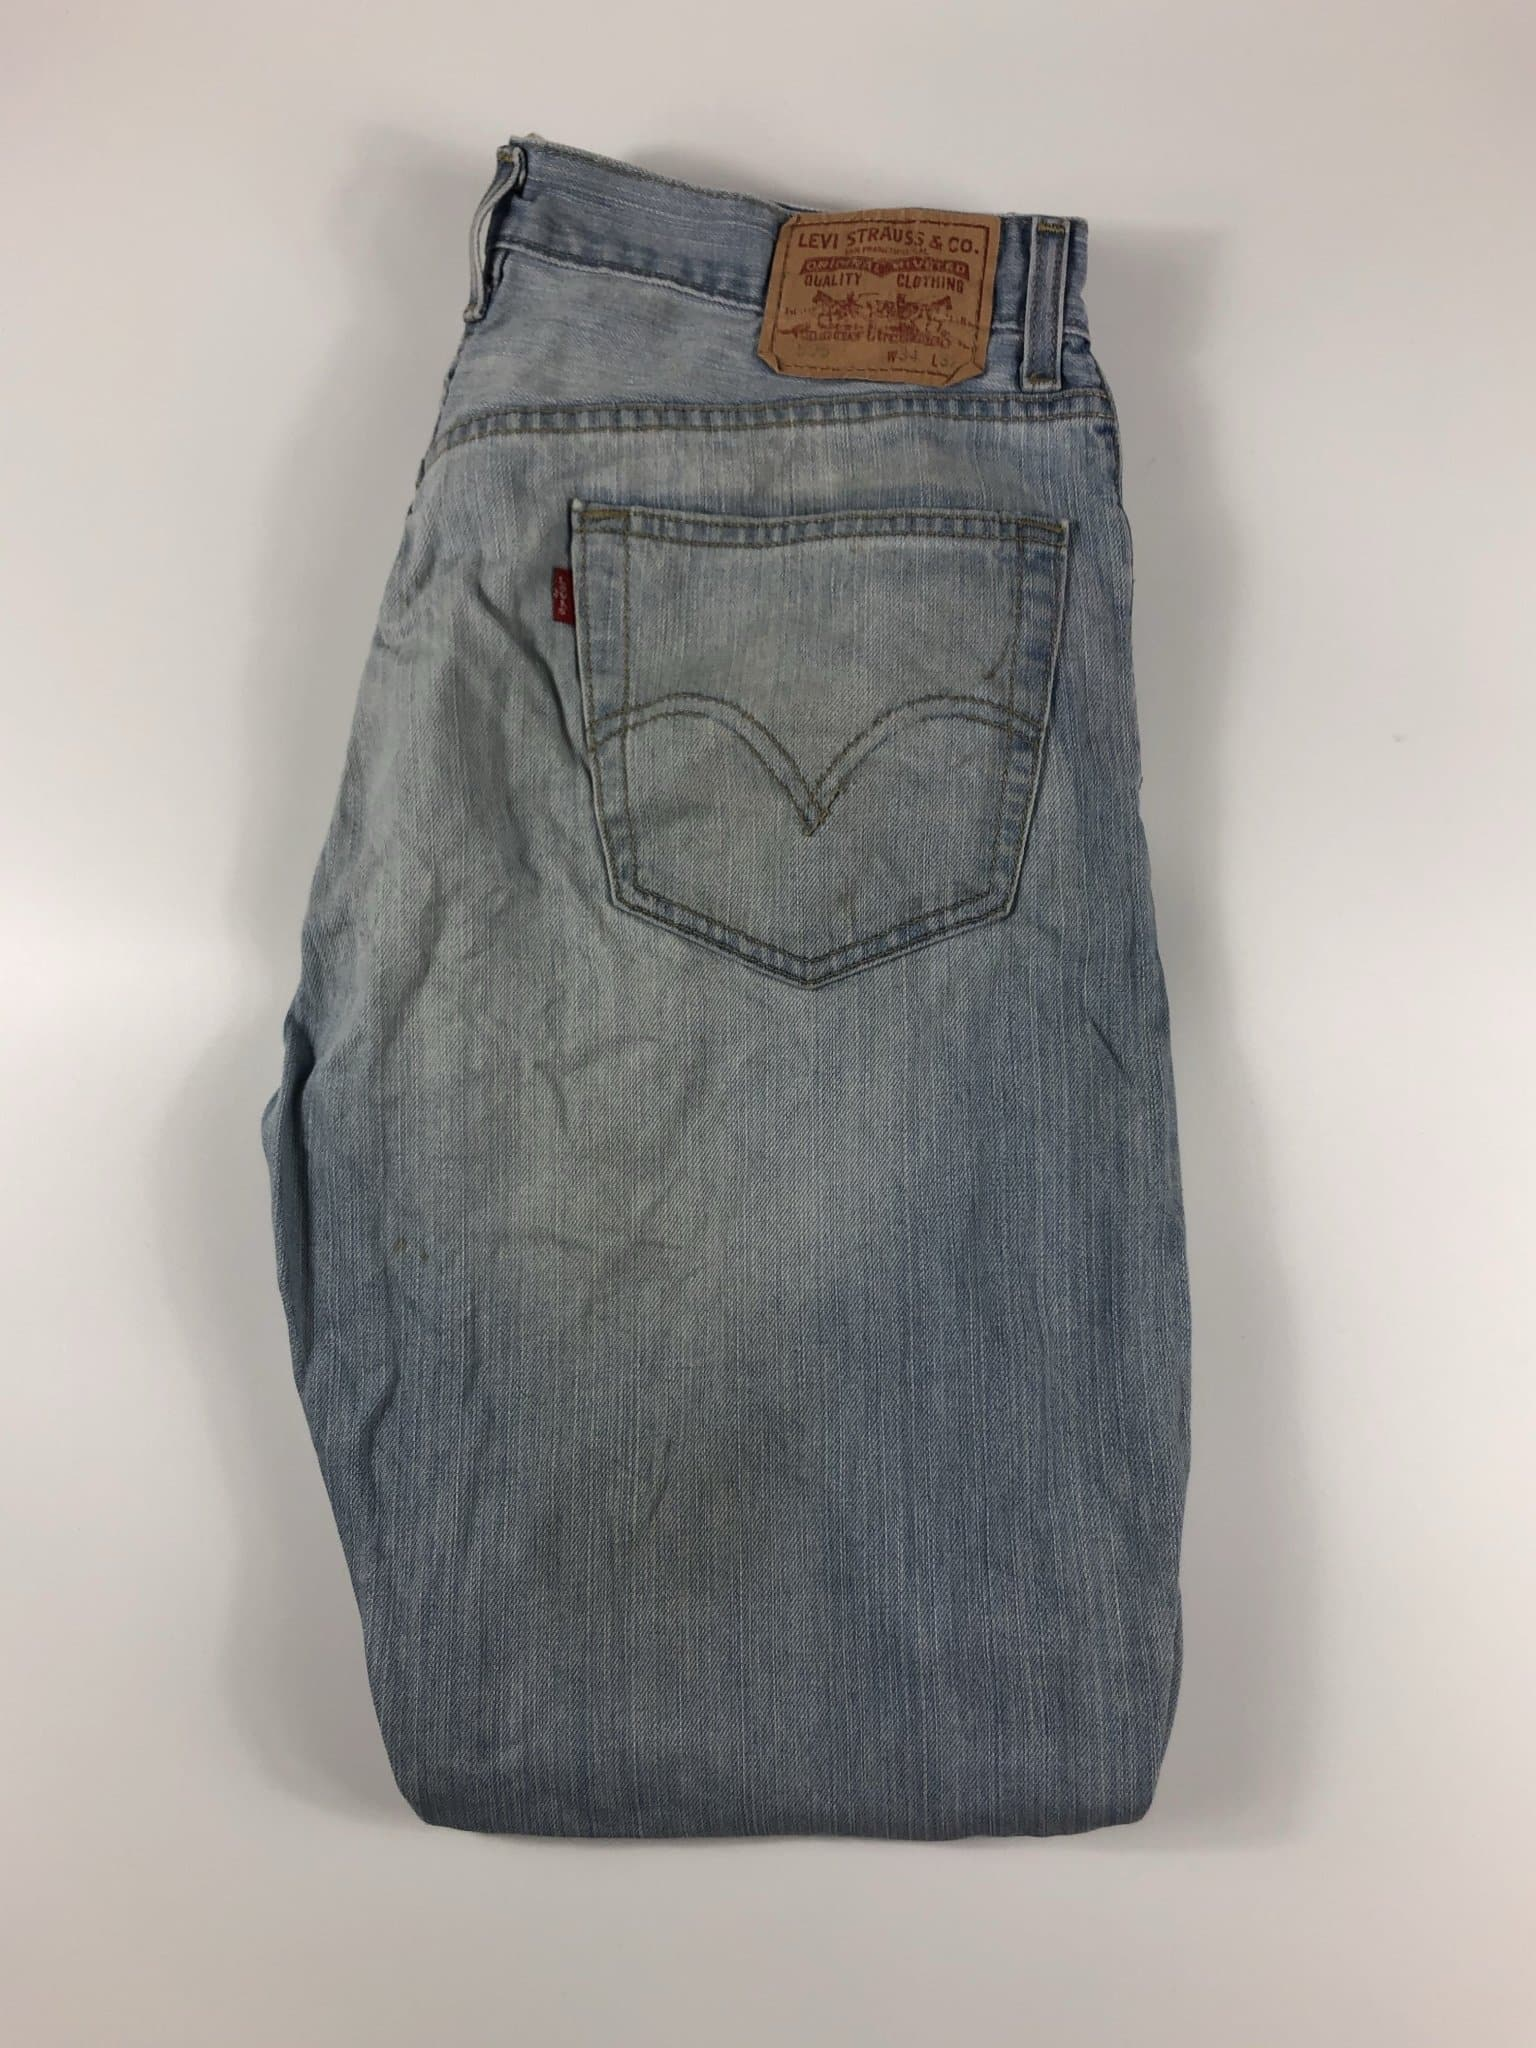 Vintage Levi's Classic 505 Jeans W34 L32 (G91) - Discounted Deals UK